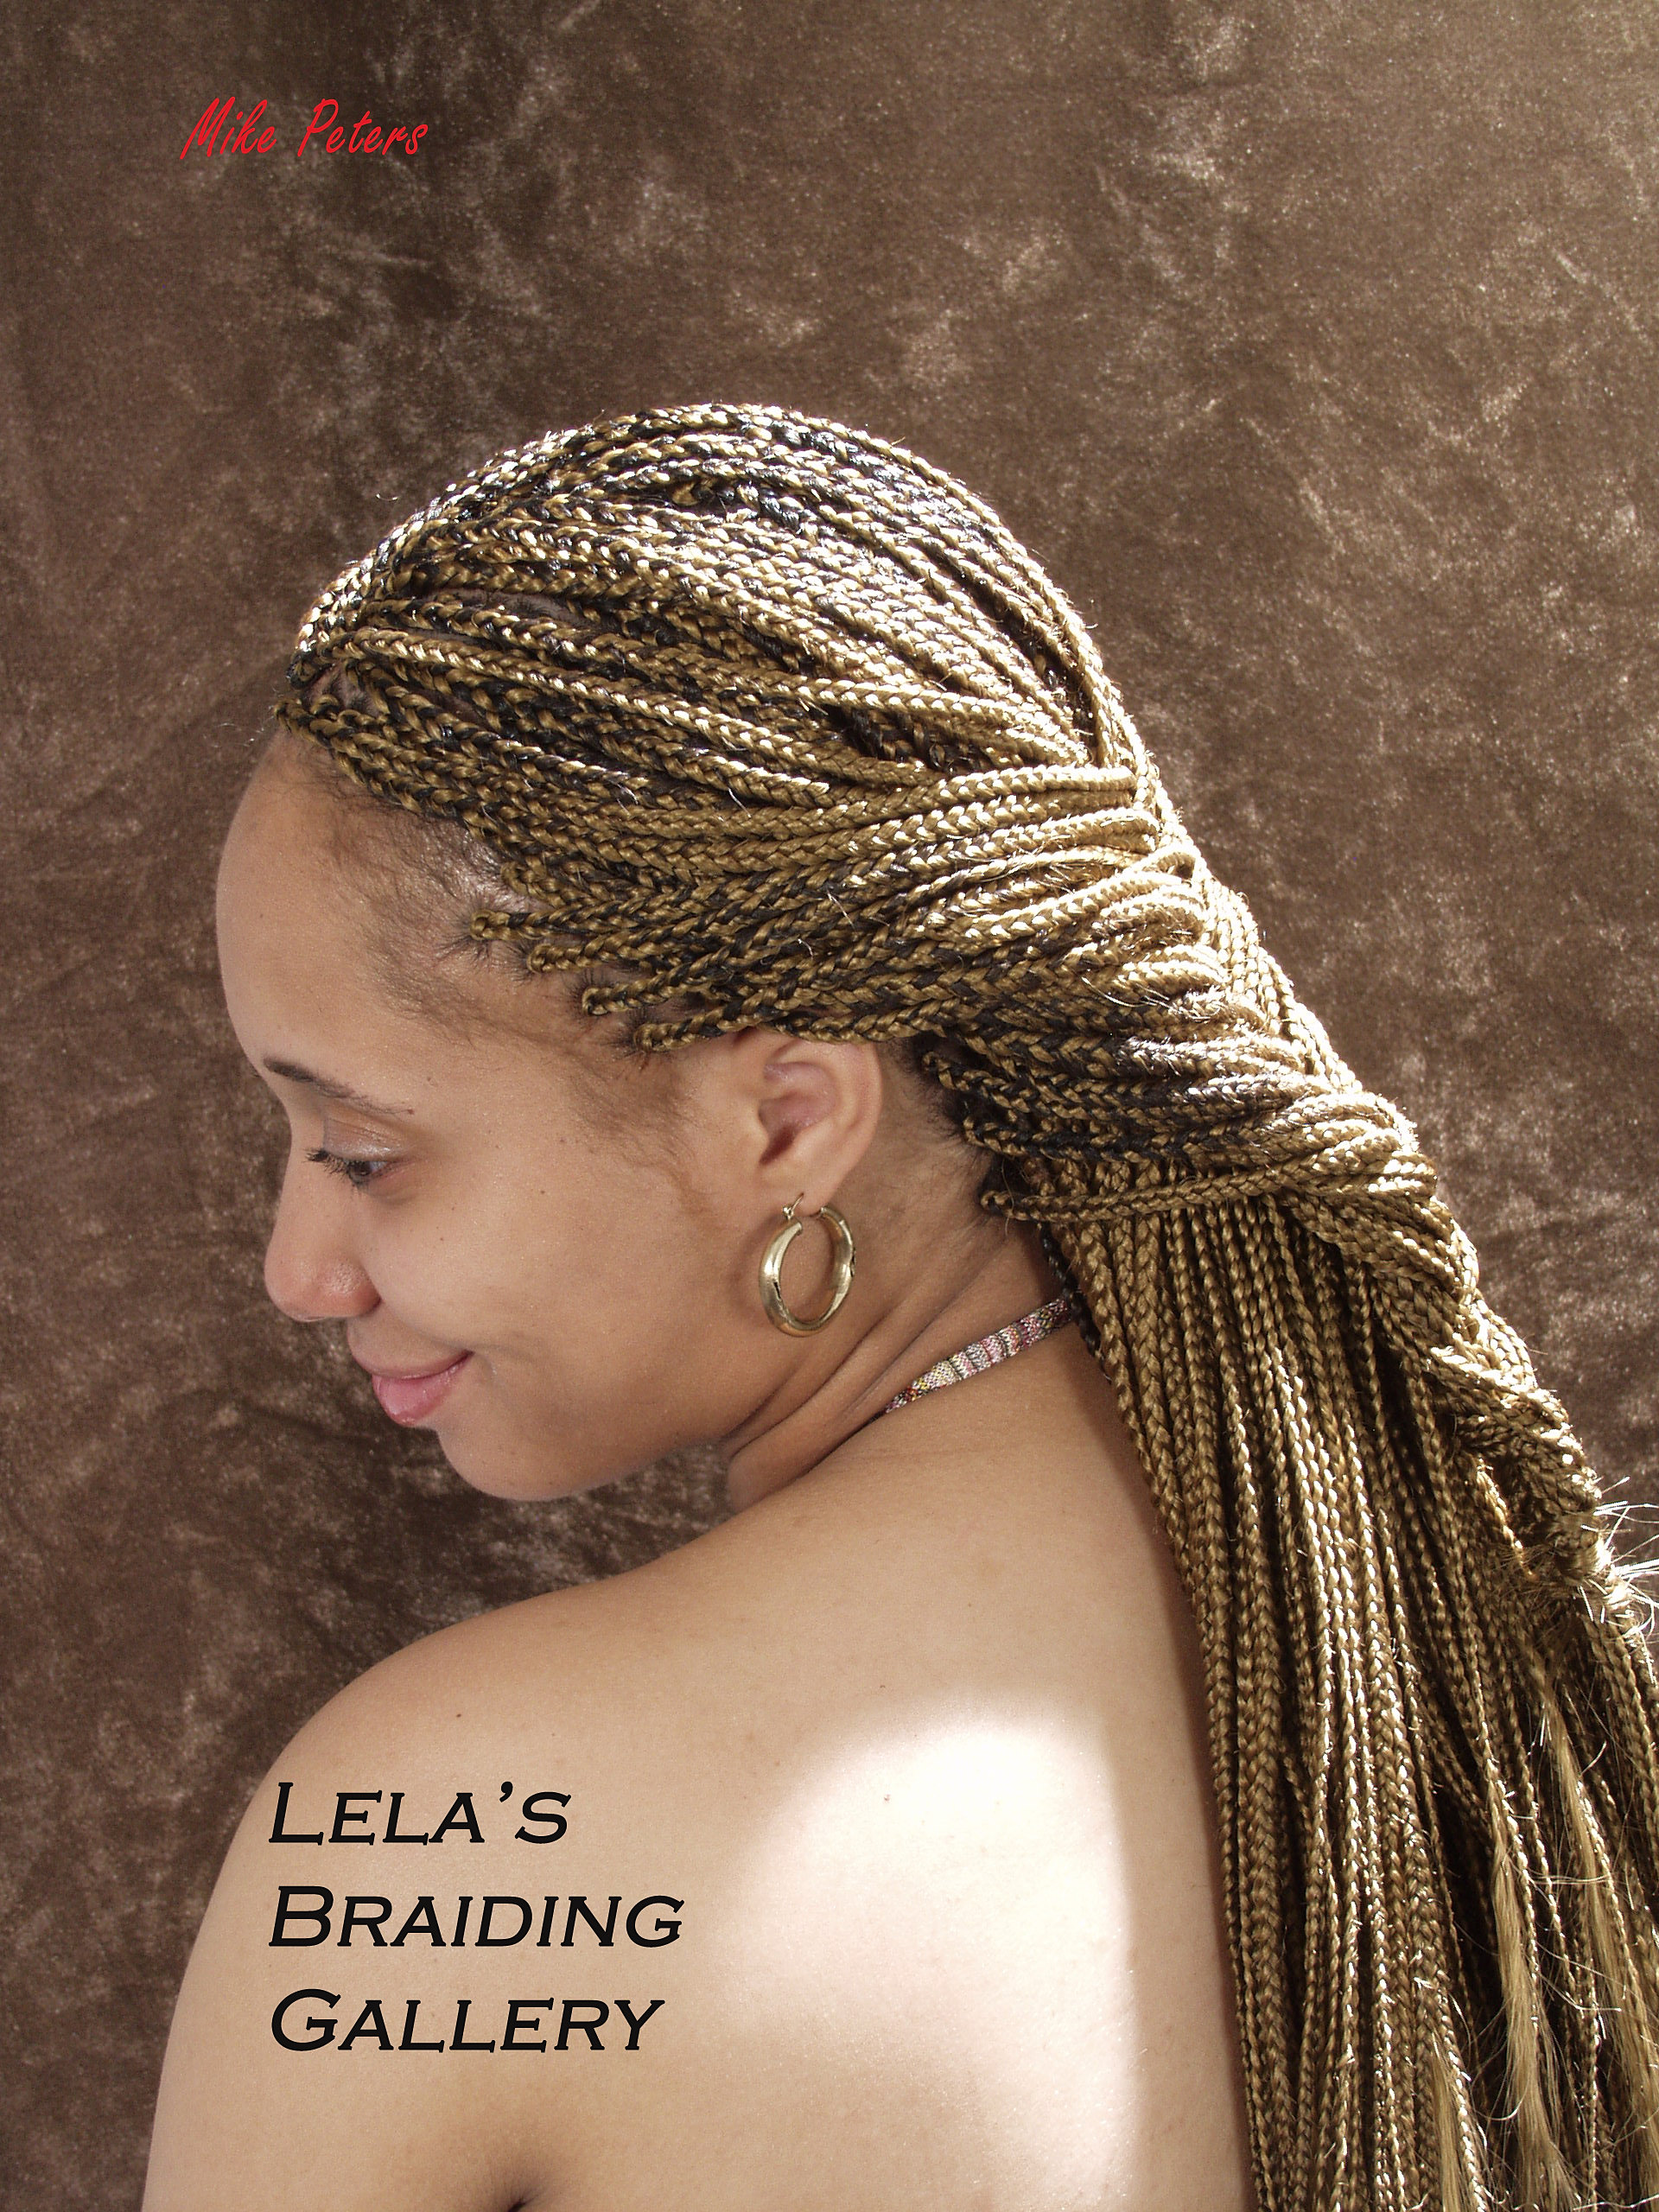 Lela S Braiding Gallery Natural Hair Care Services